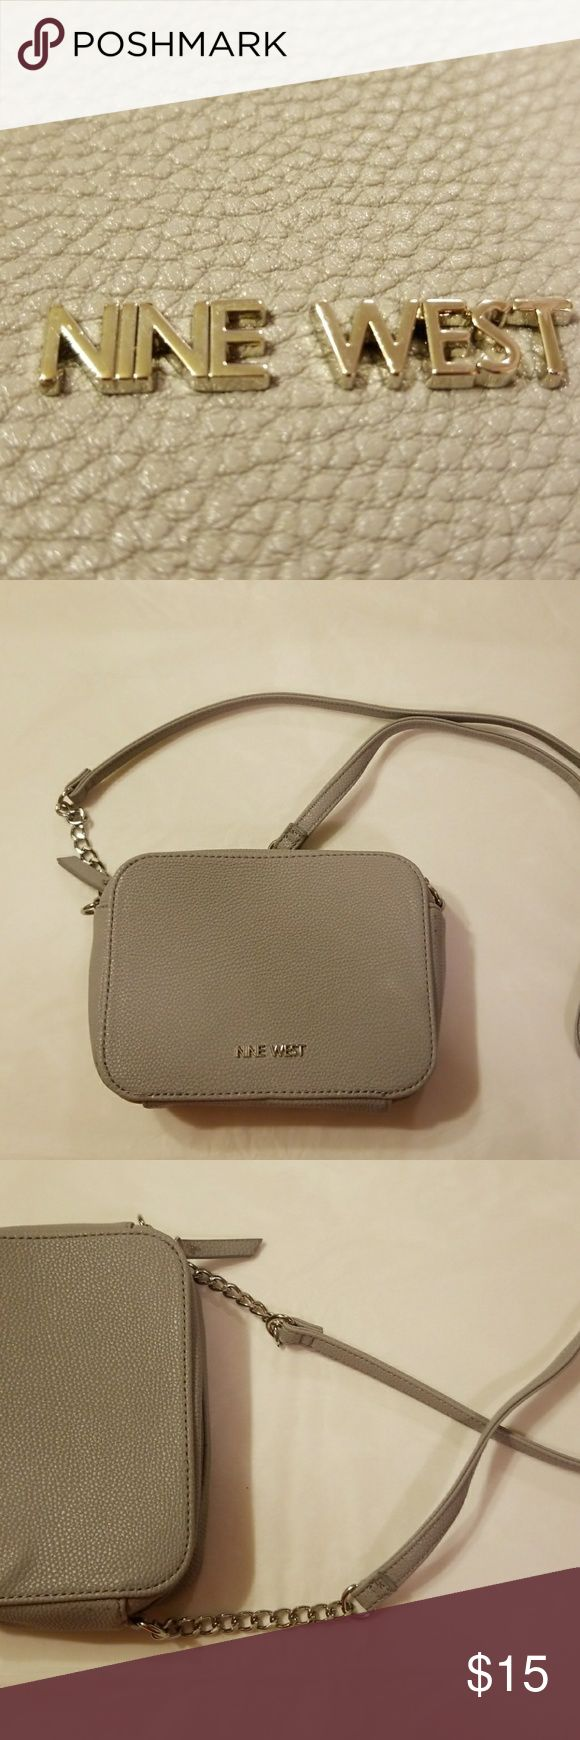 Dusty gray cross body Cute.. Can fit Samsung Galaxy 8plus and more.  Silver accent chains. Zipper closure.  Measurements : approx. 7 x 5 Flaw: little bubble in leather. Pic 4 black speckled spots. Came that way. Tried to show but you really can't tell. Unless up close scrutiny.  *Cute gray fur pom pom bag accessory,  available.  check closet Nine West Bags Crossbody Bags